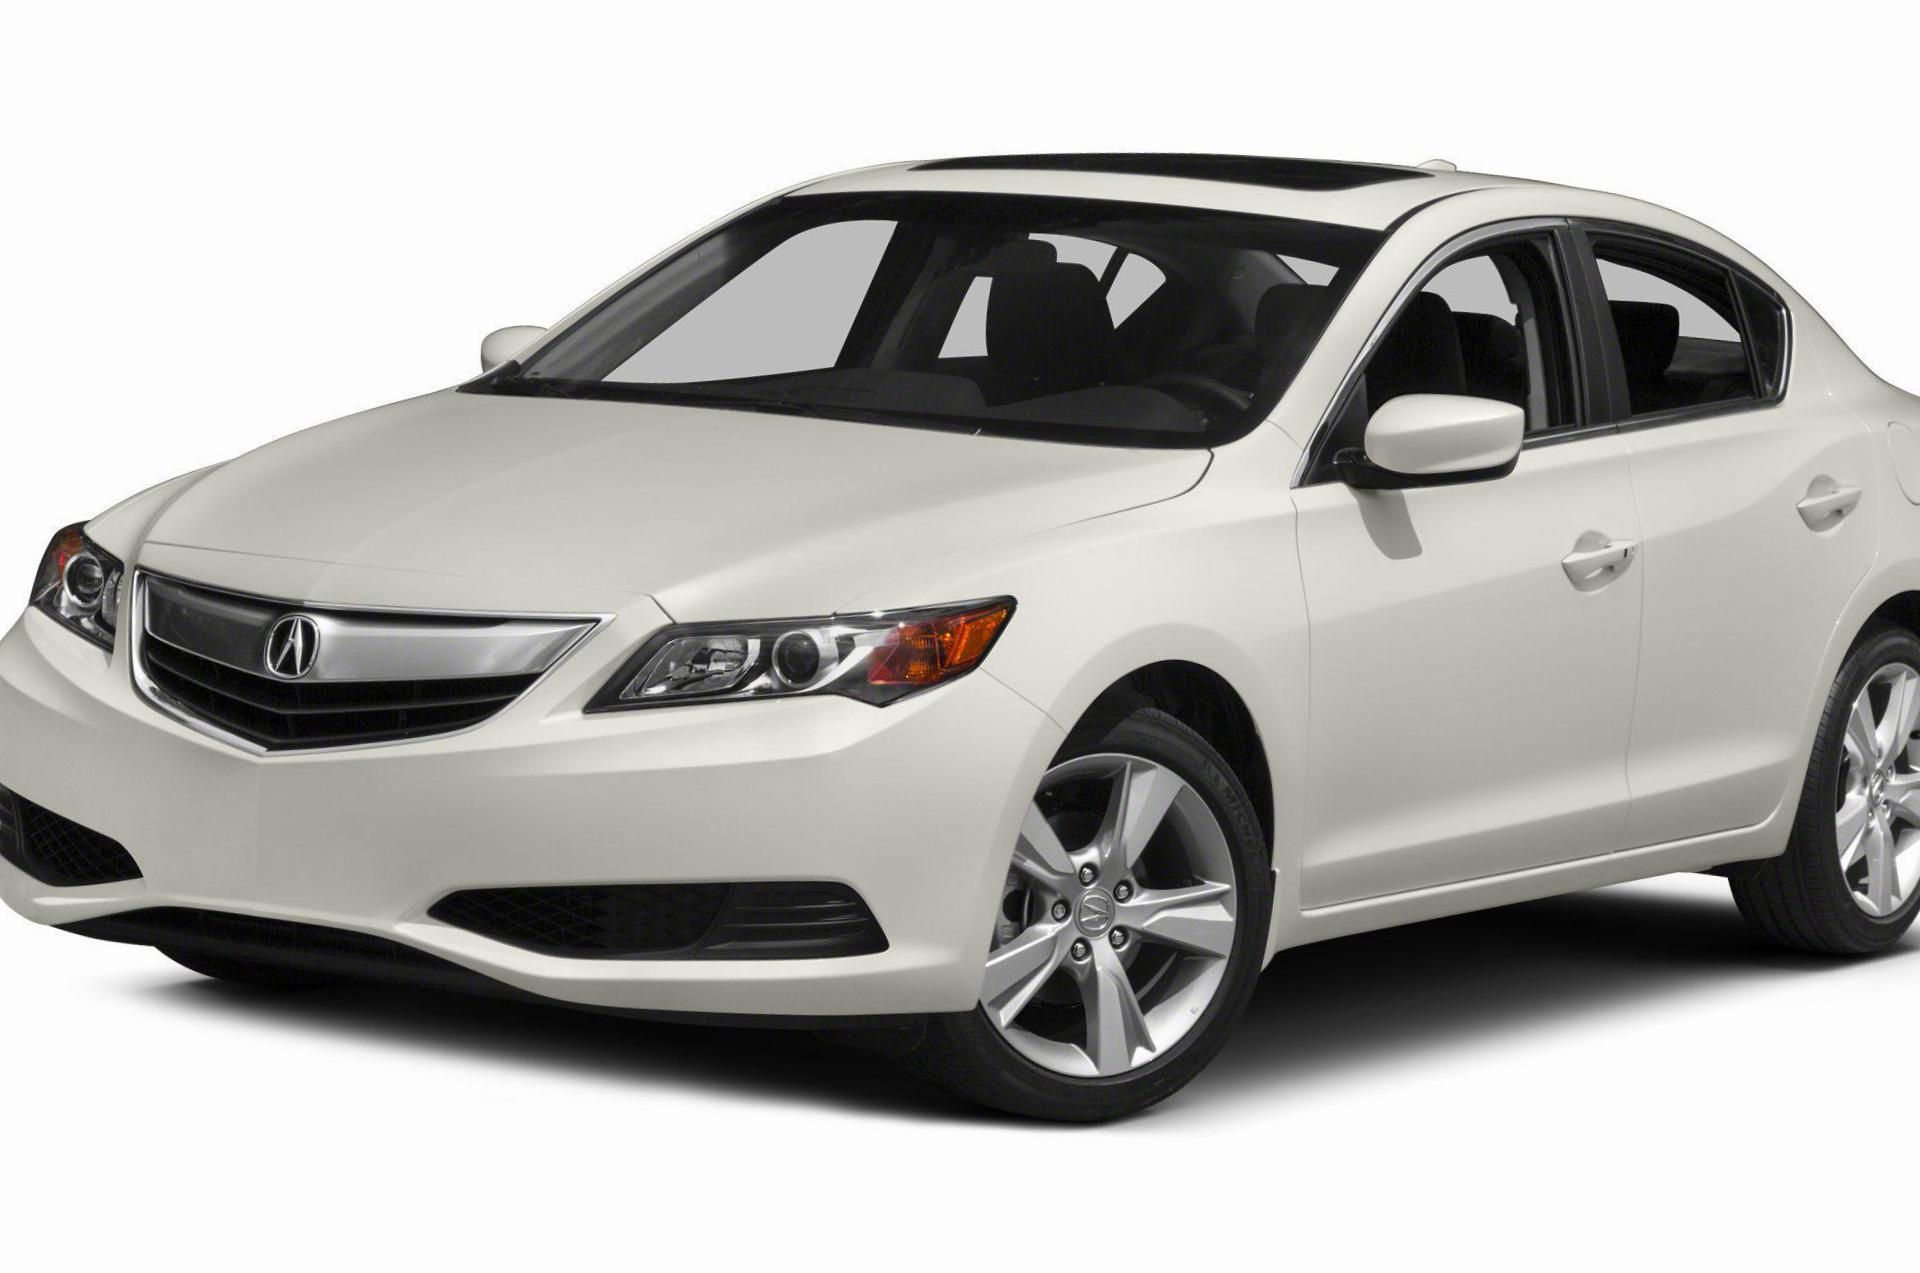 Acura Ilx Photos And Specs Photo Ilx Acura Review And 29 Perfect Photos Of Acura Ilx Acura Ilx Acura Owners Manuals